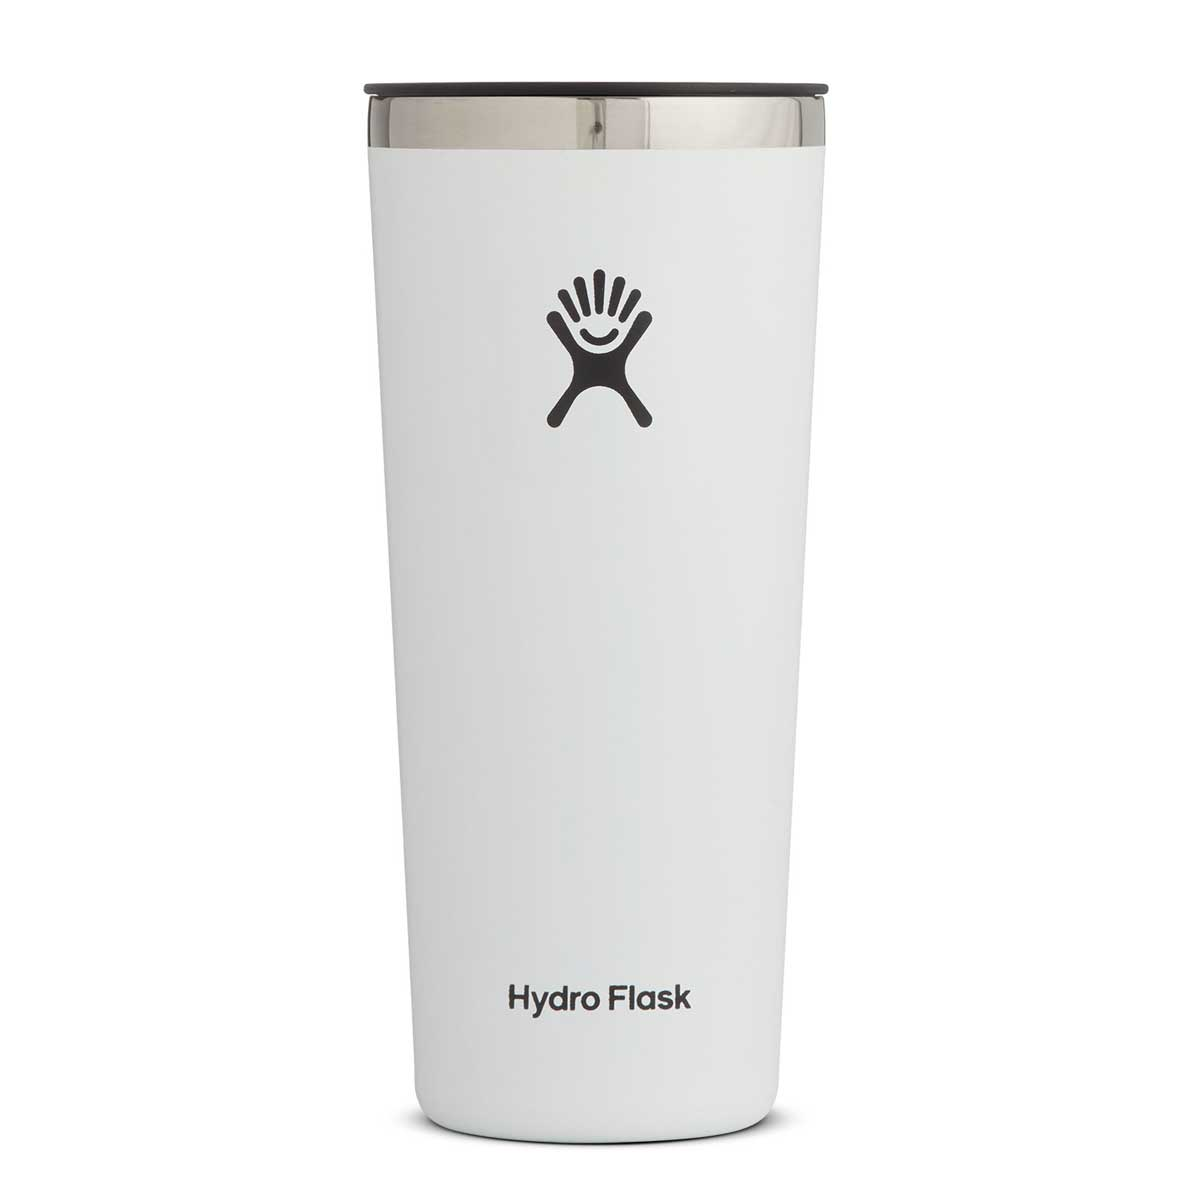 Hydro Flask 22 oz Tumbler in White